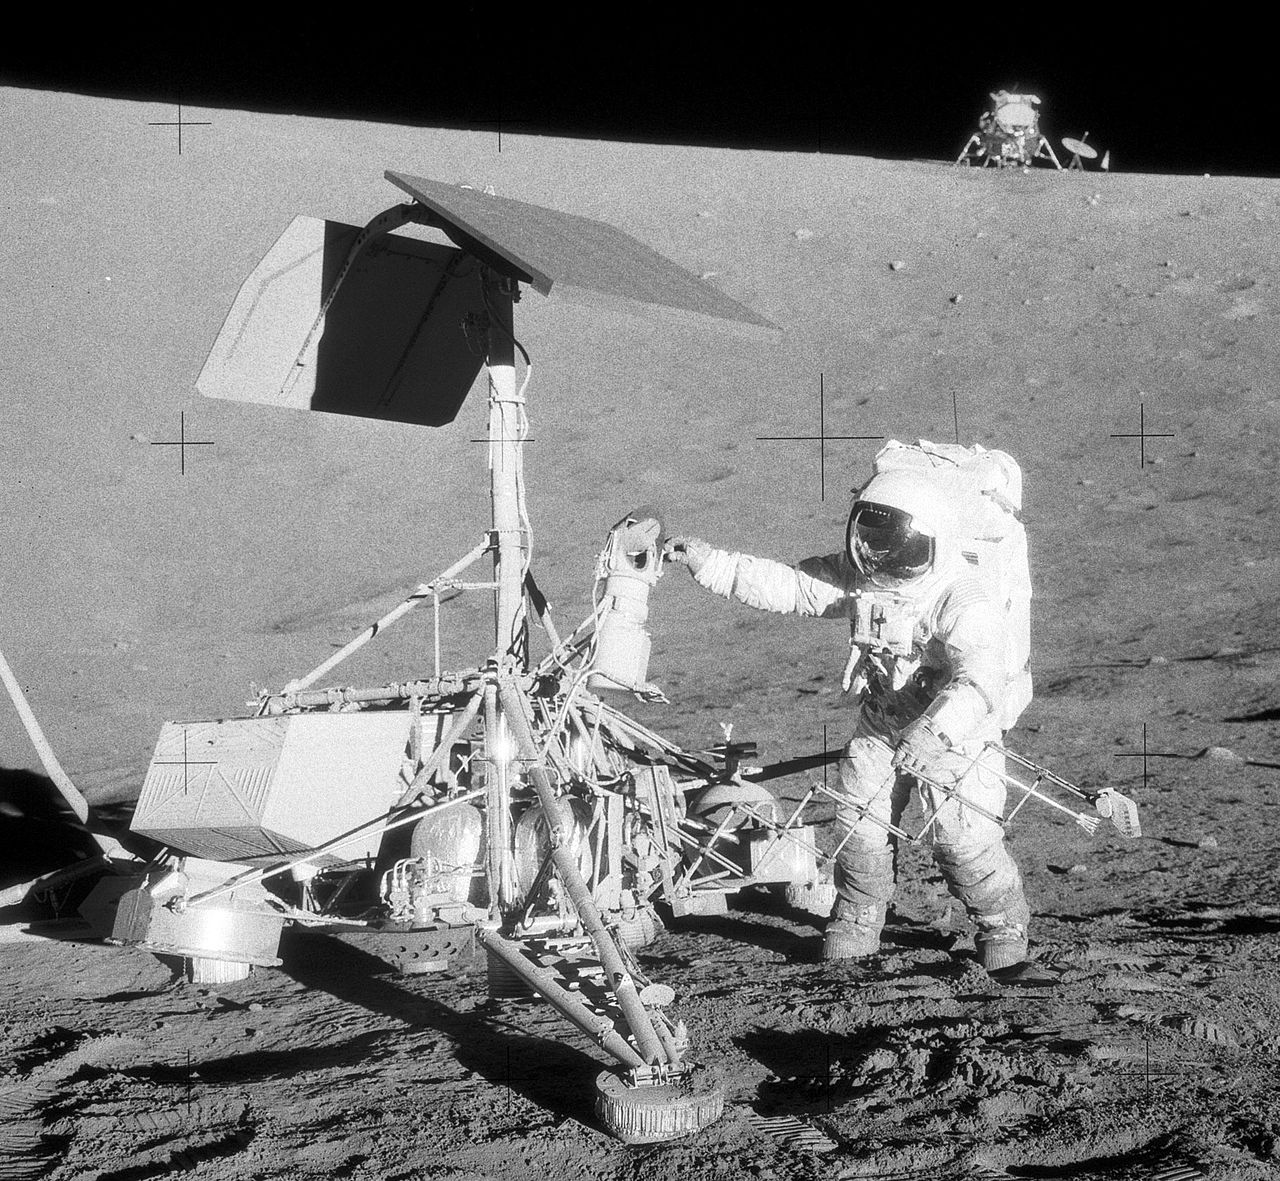 Astronaut Pete Conrad near Surveyor 3 during Apollo 12, 1969. Lunar module in the background.